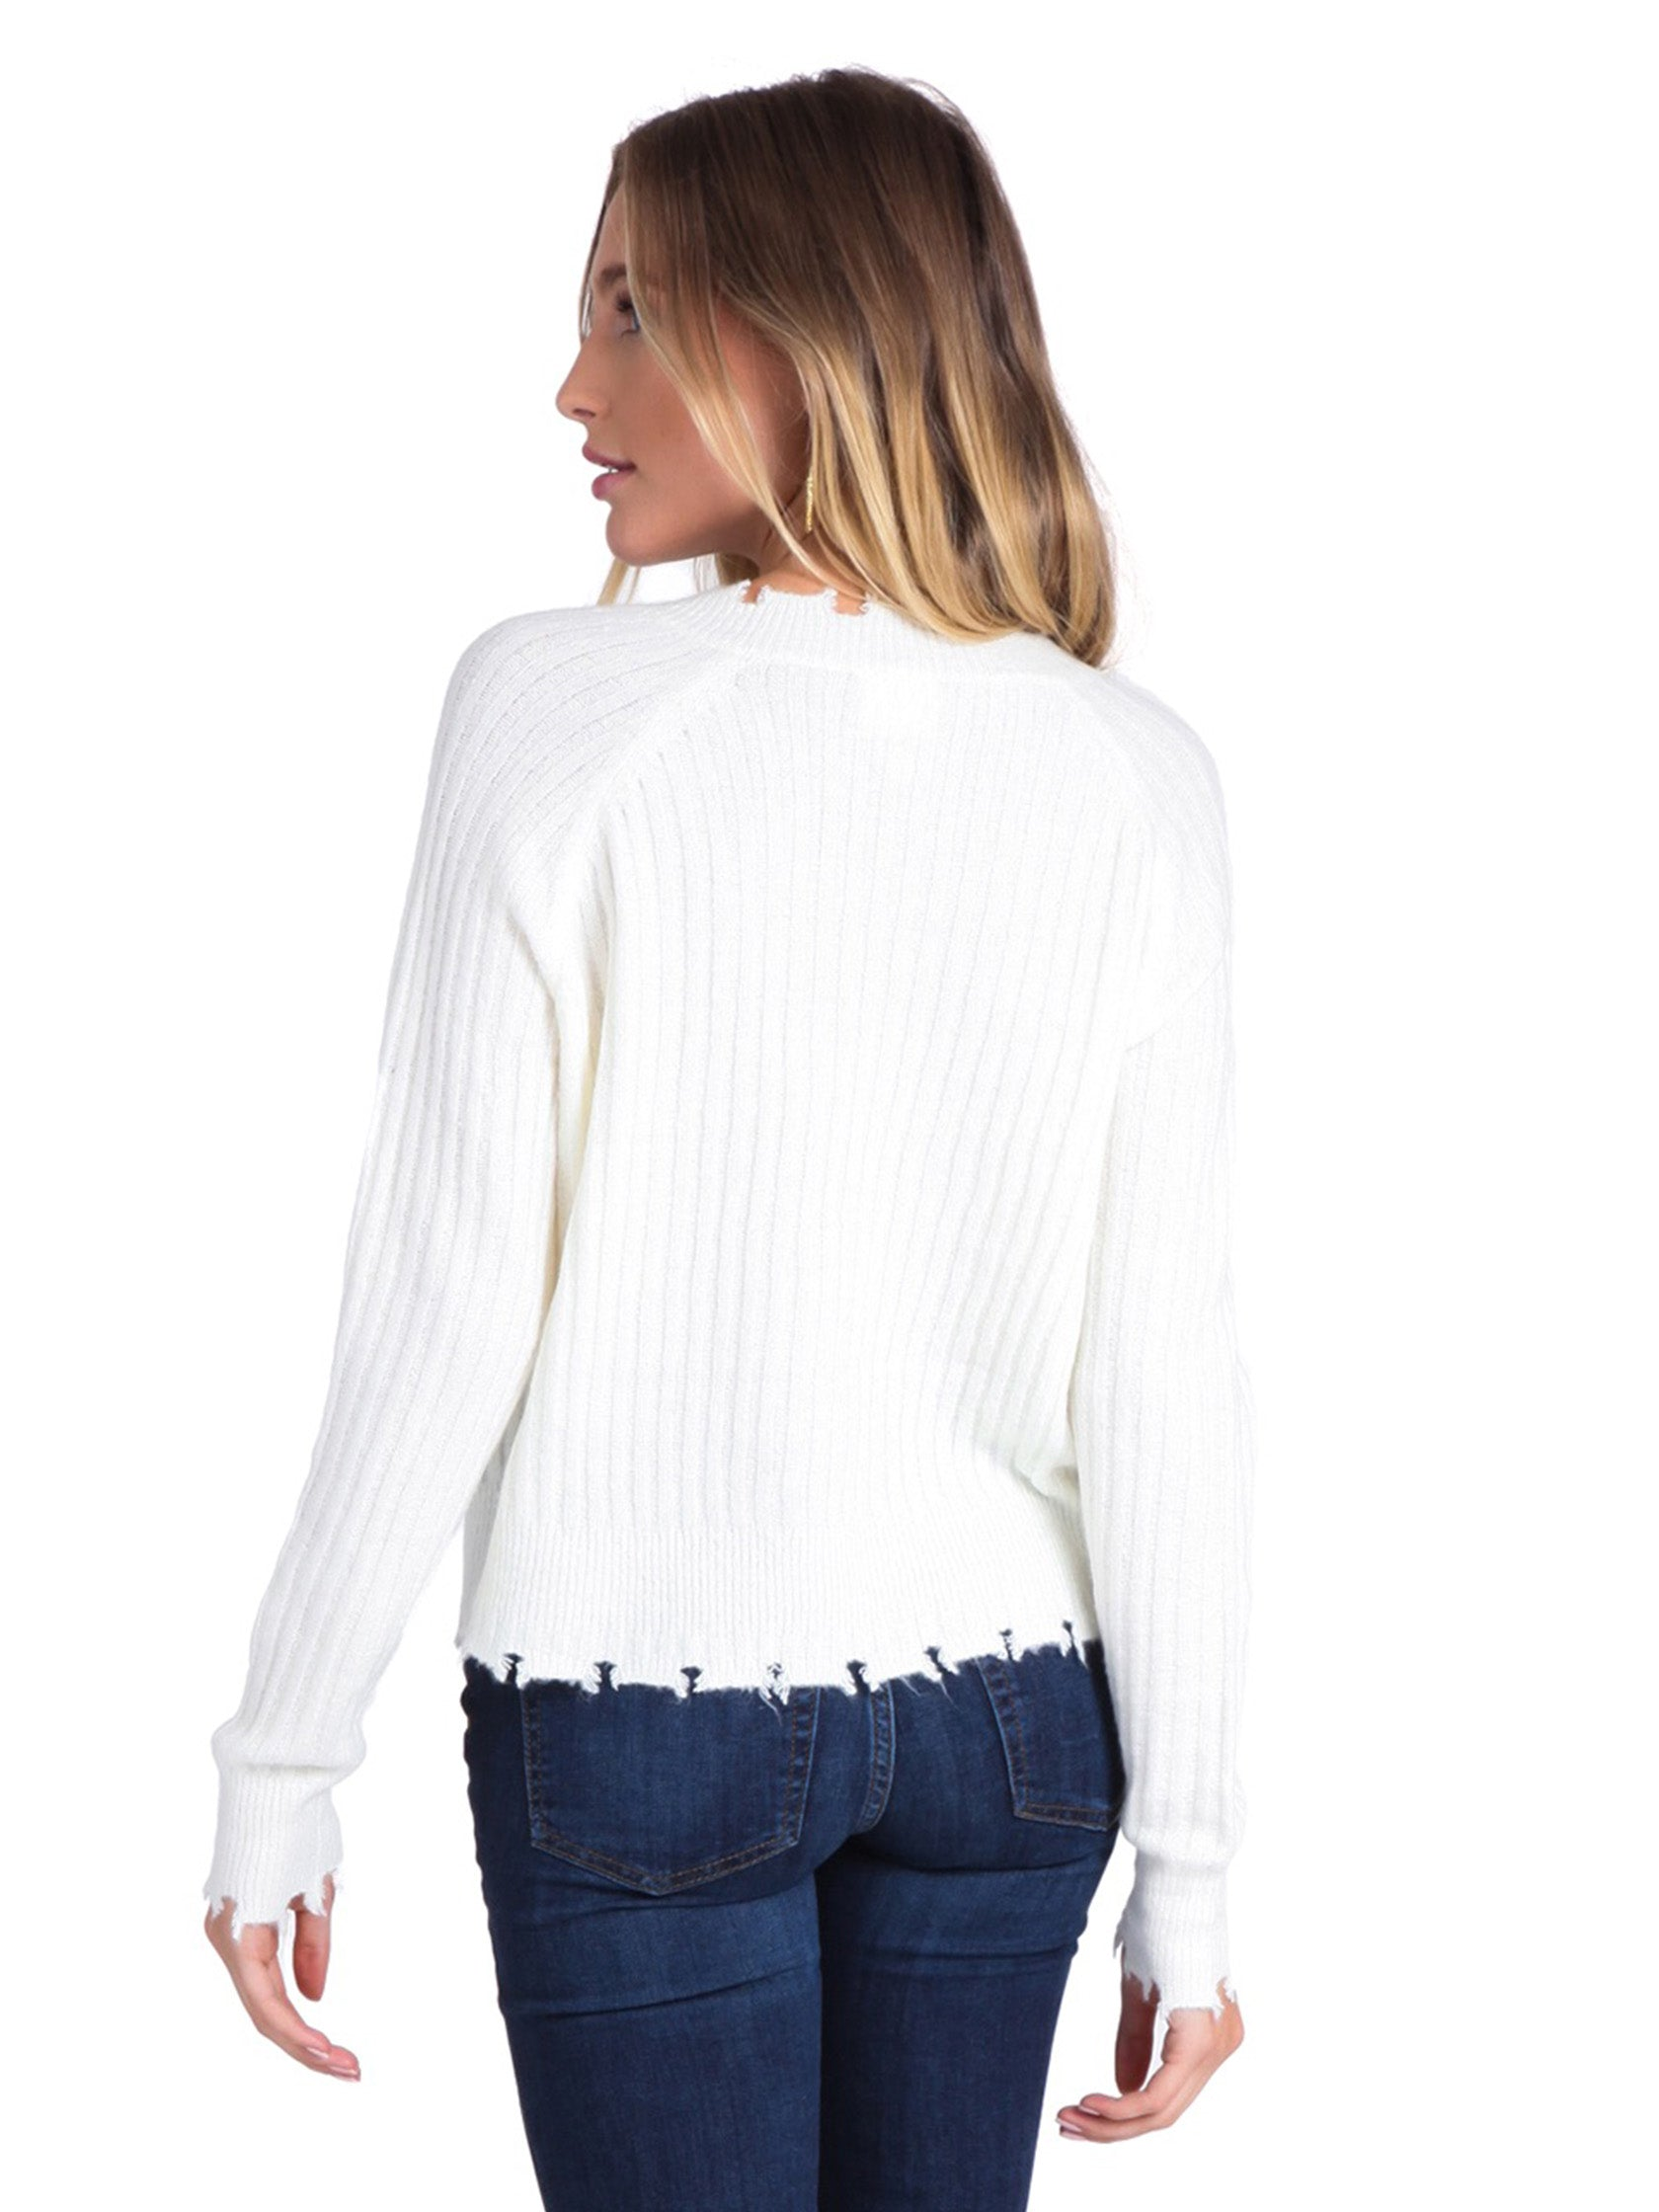 Women outfit in a sweater rental from FashionPass called Distressed Ivory Sweater